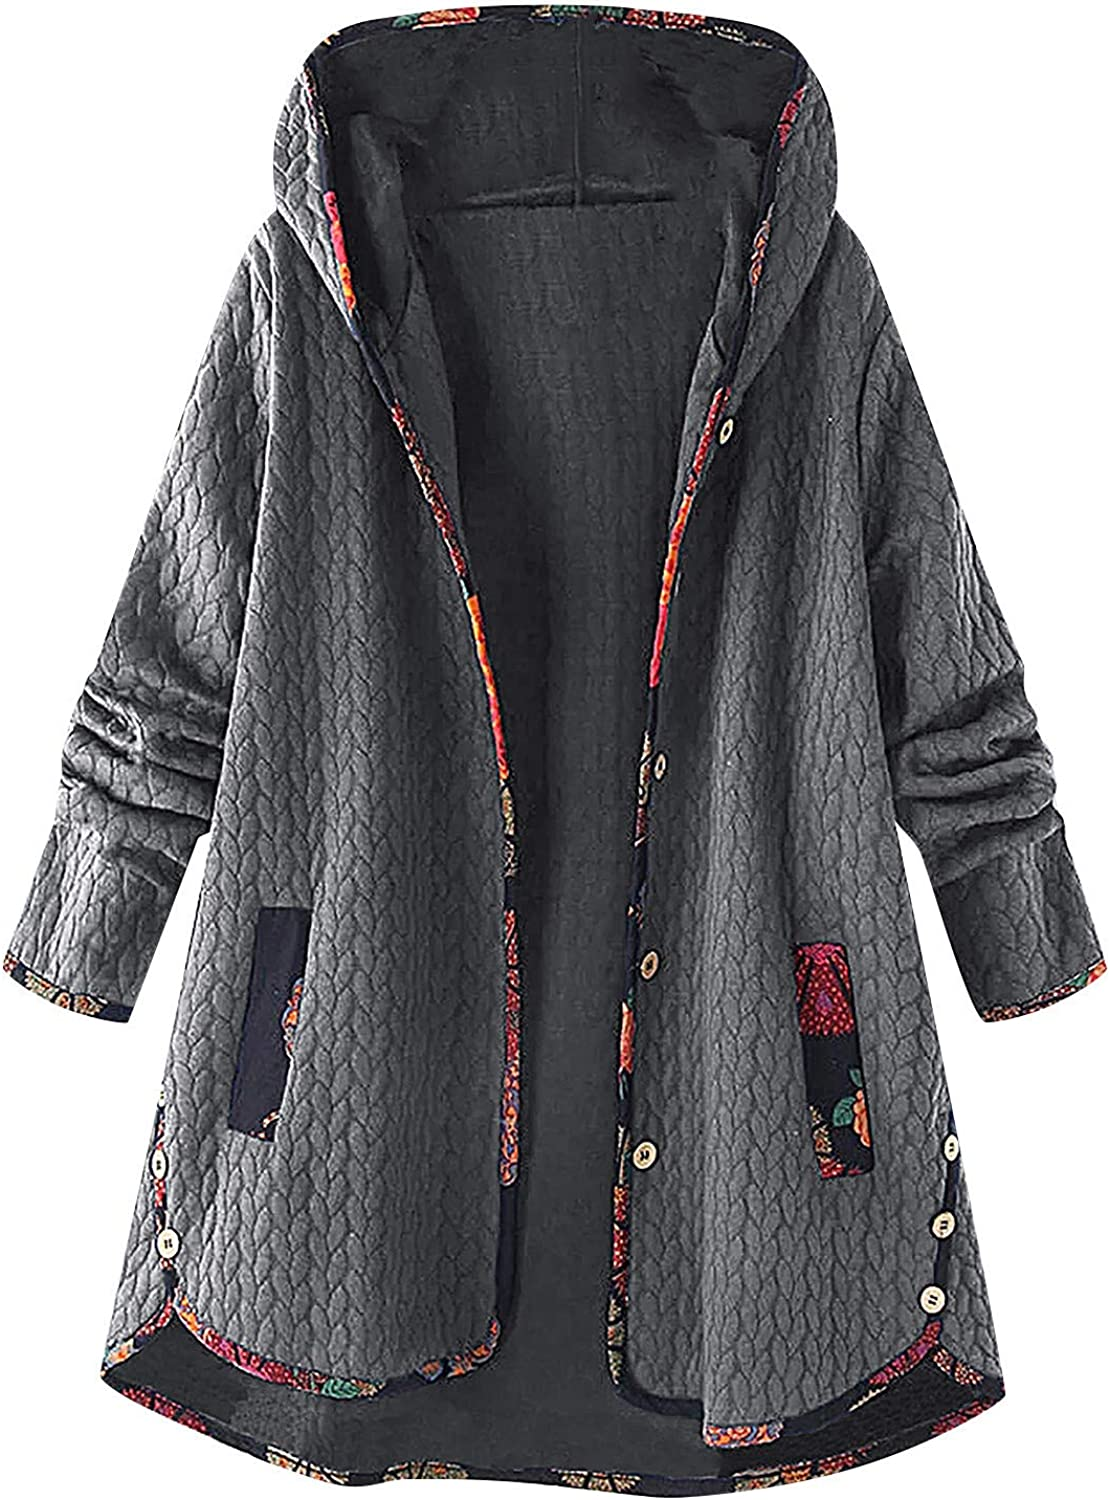 DEATU Winter Clothes for Women Button Jackets Coats with Hood Long Sleeve Plus Size Casual Vintage Warm Cotton Outwear